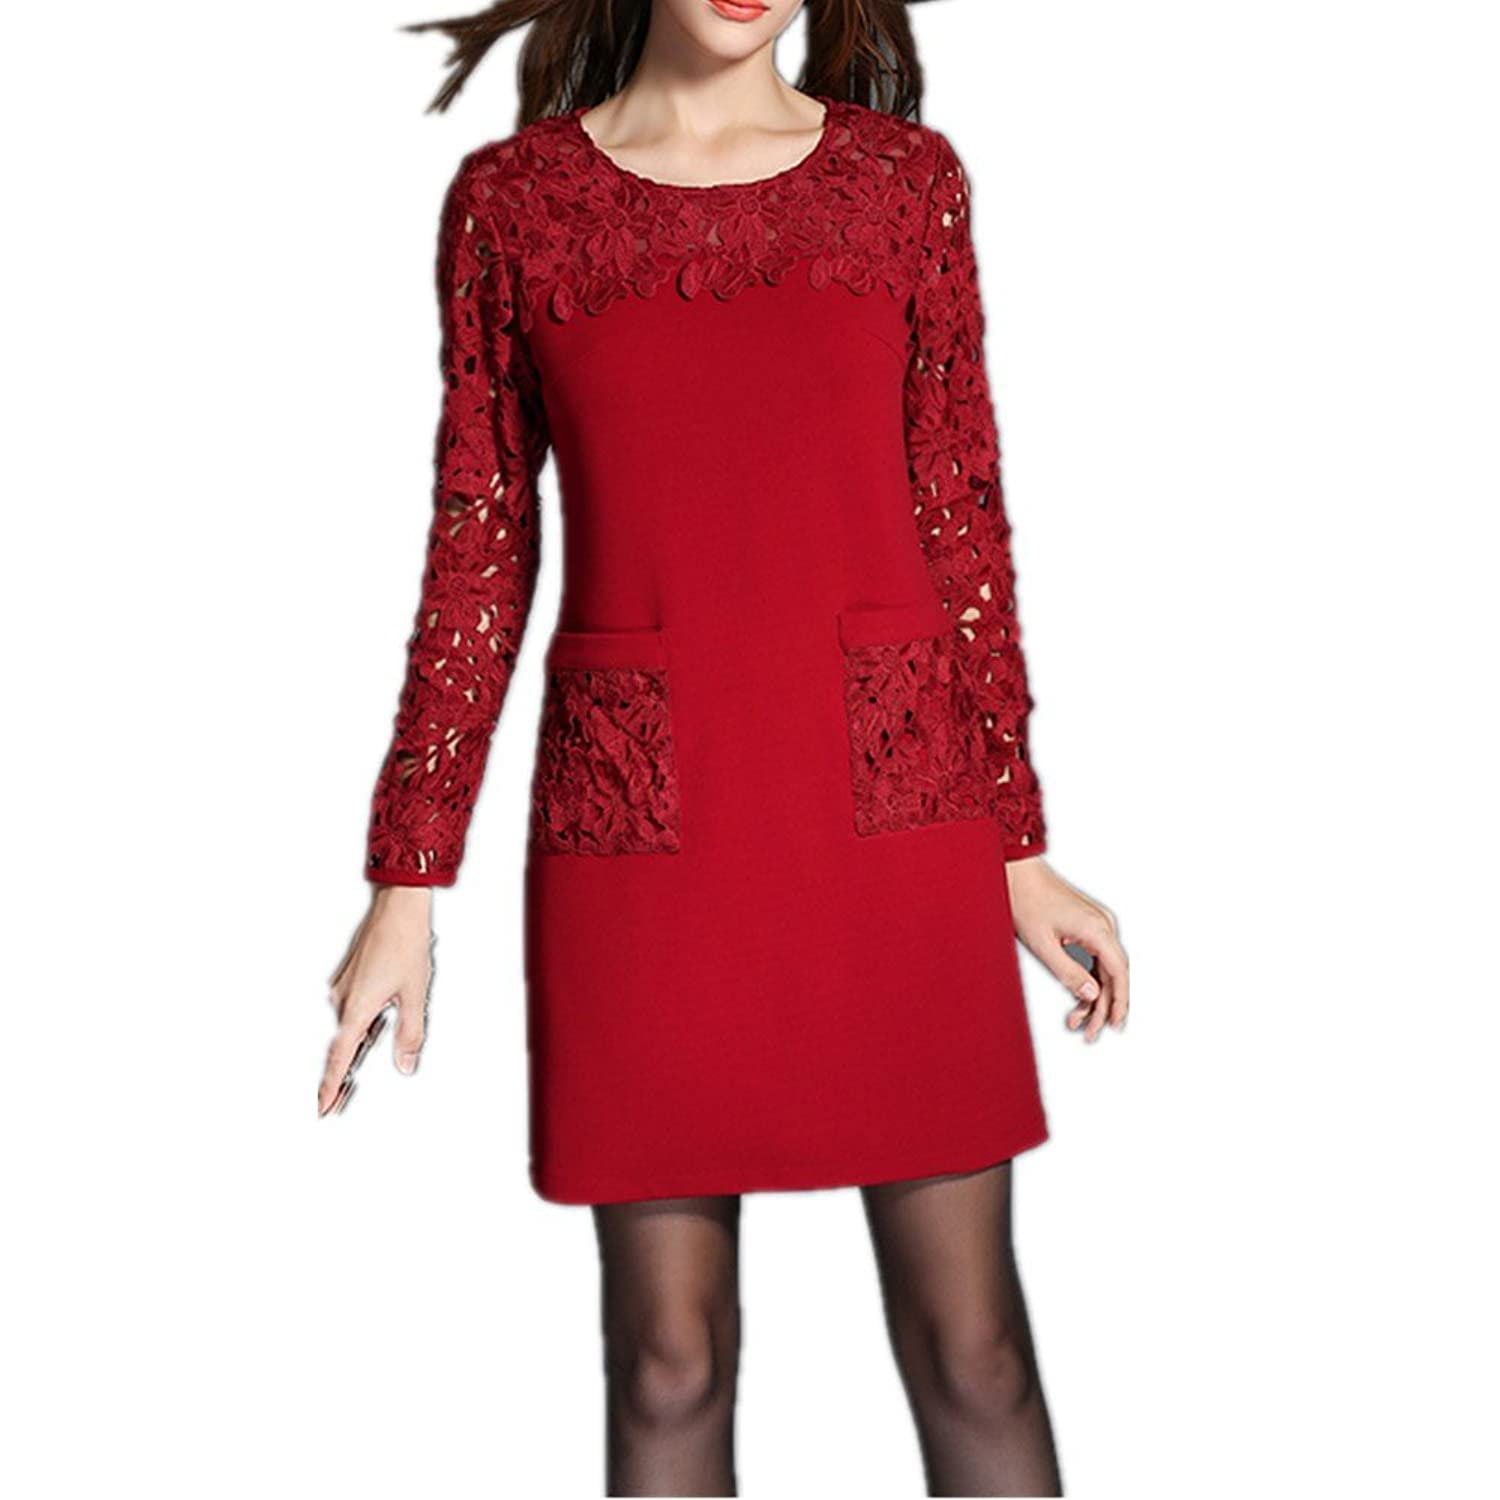 Generic Women's Oversized Embroidered Exquisite Pattern Dress Red Size M